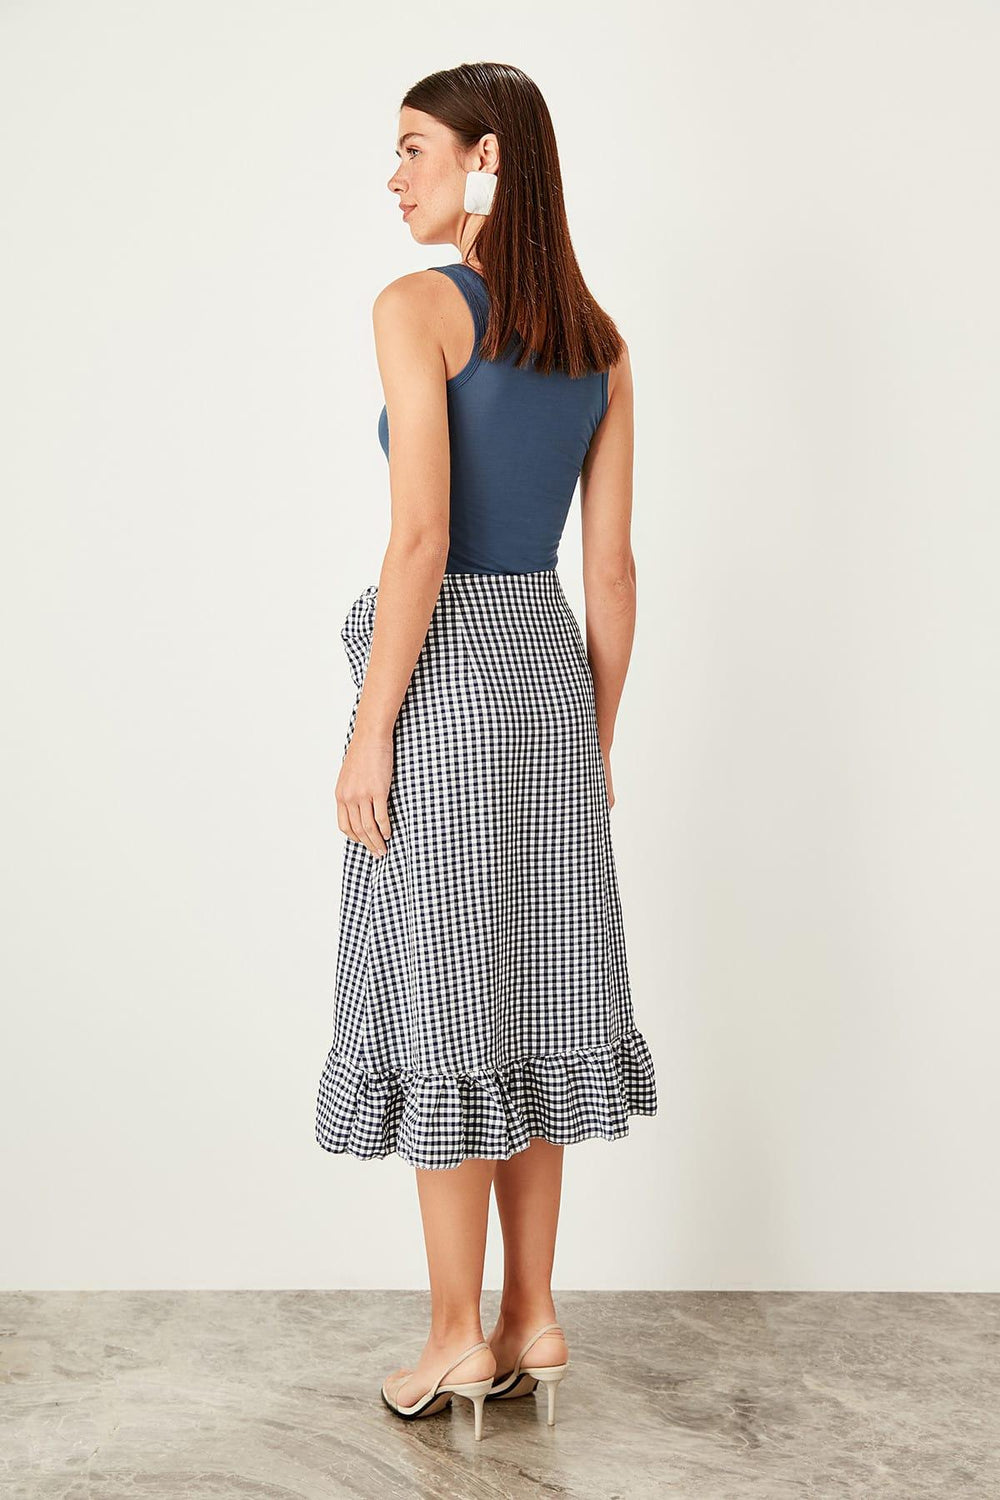 Miss Zut Miss Zut Navy Plaid Skirt Miss Zut &CO